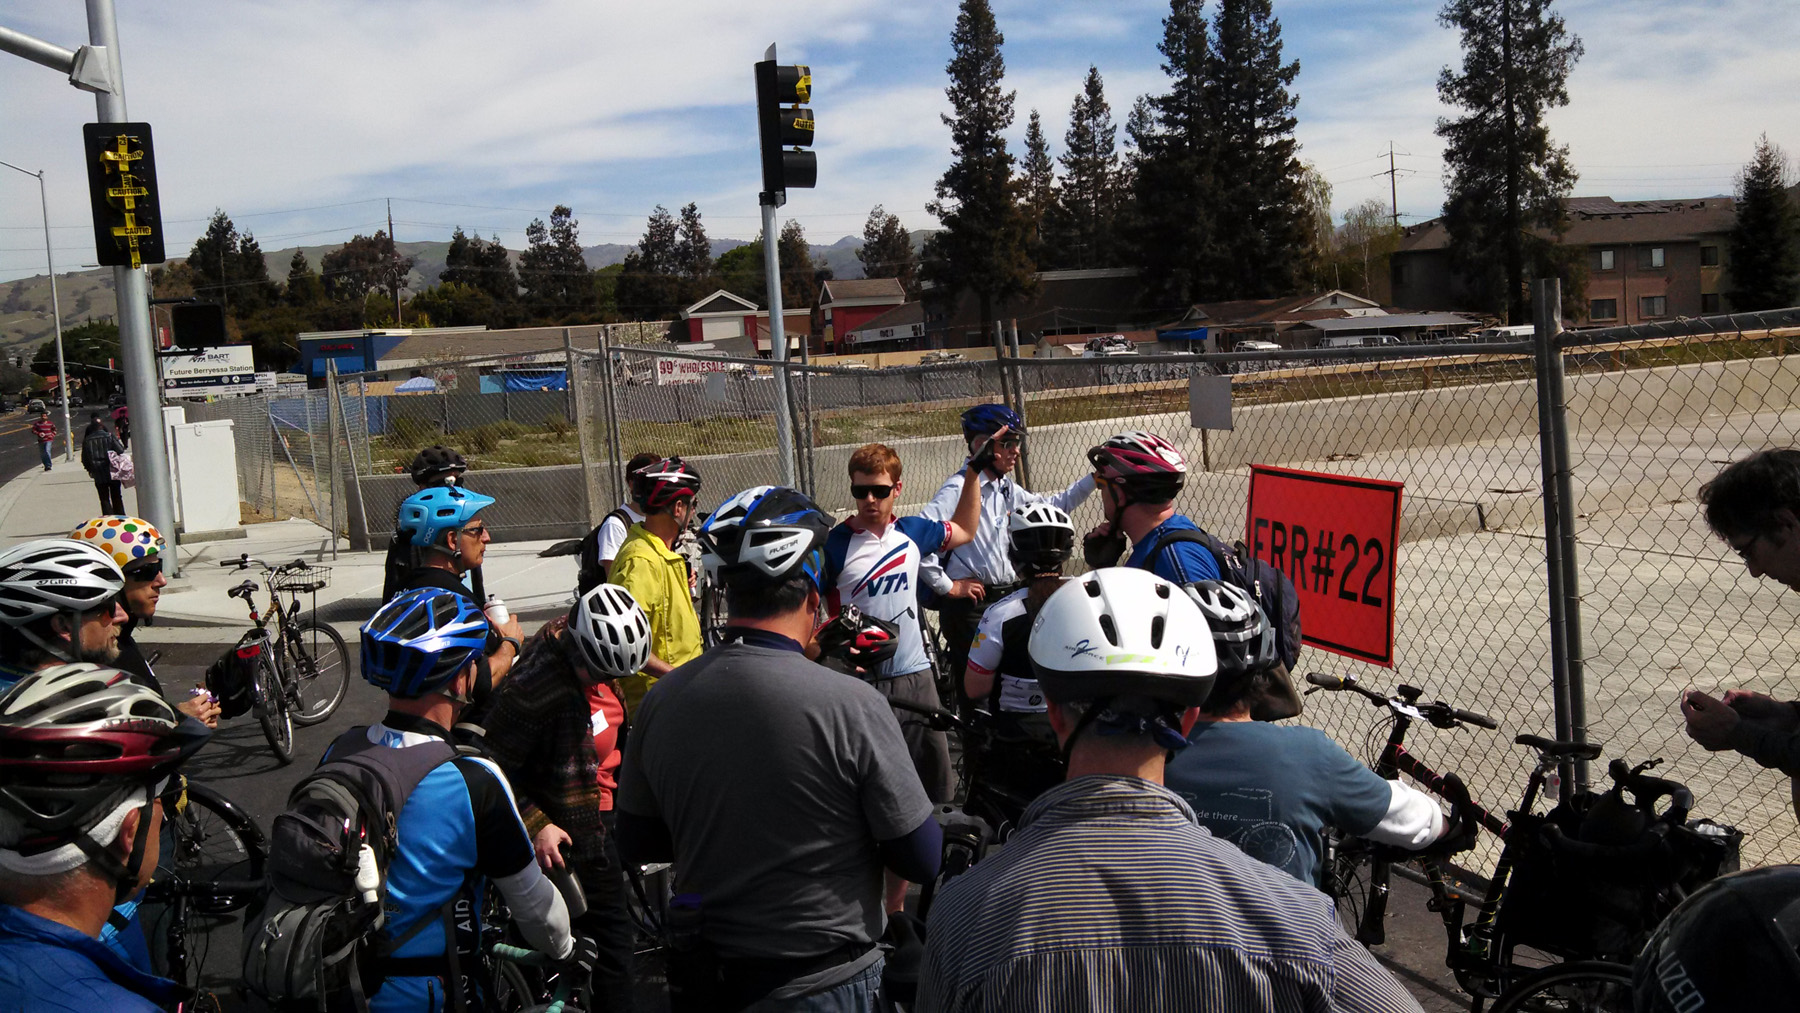 The Silicon Valley Bicycle Coalition discussing bike features at the Berryessa Station in 2014. Photo: SVBC